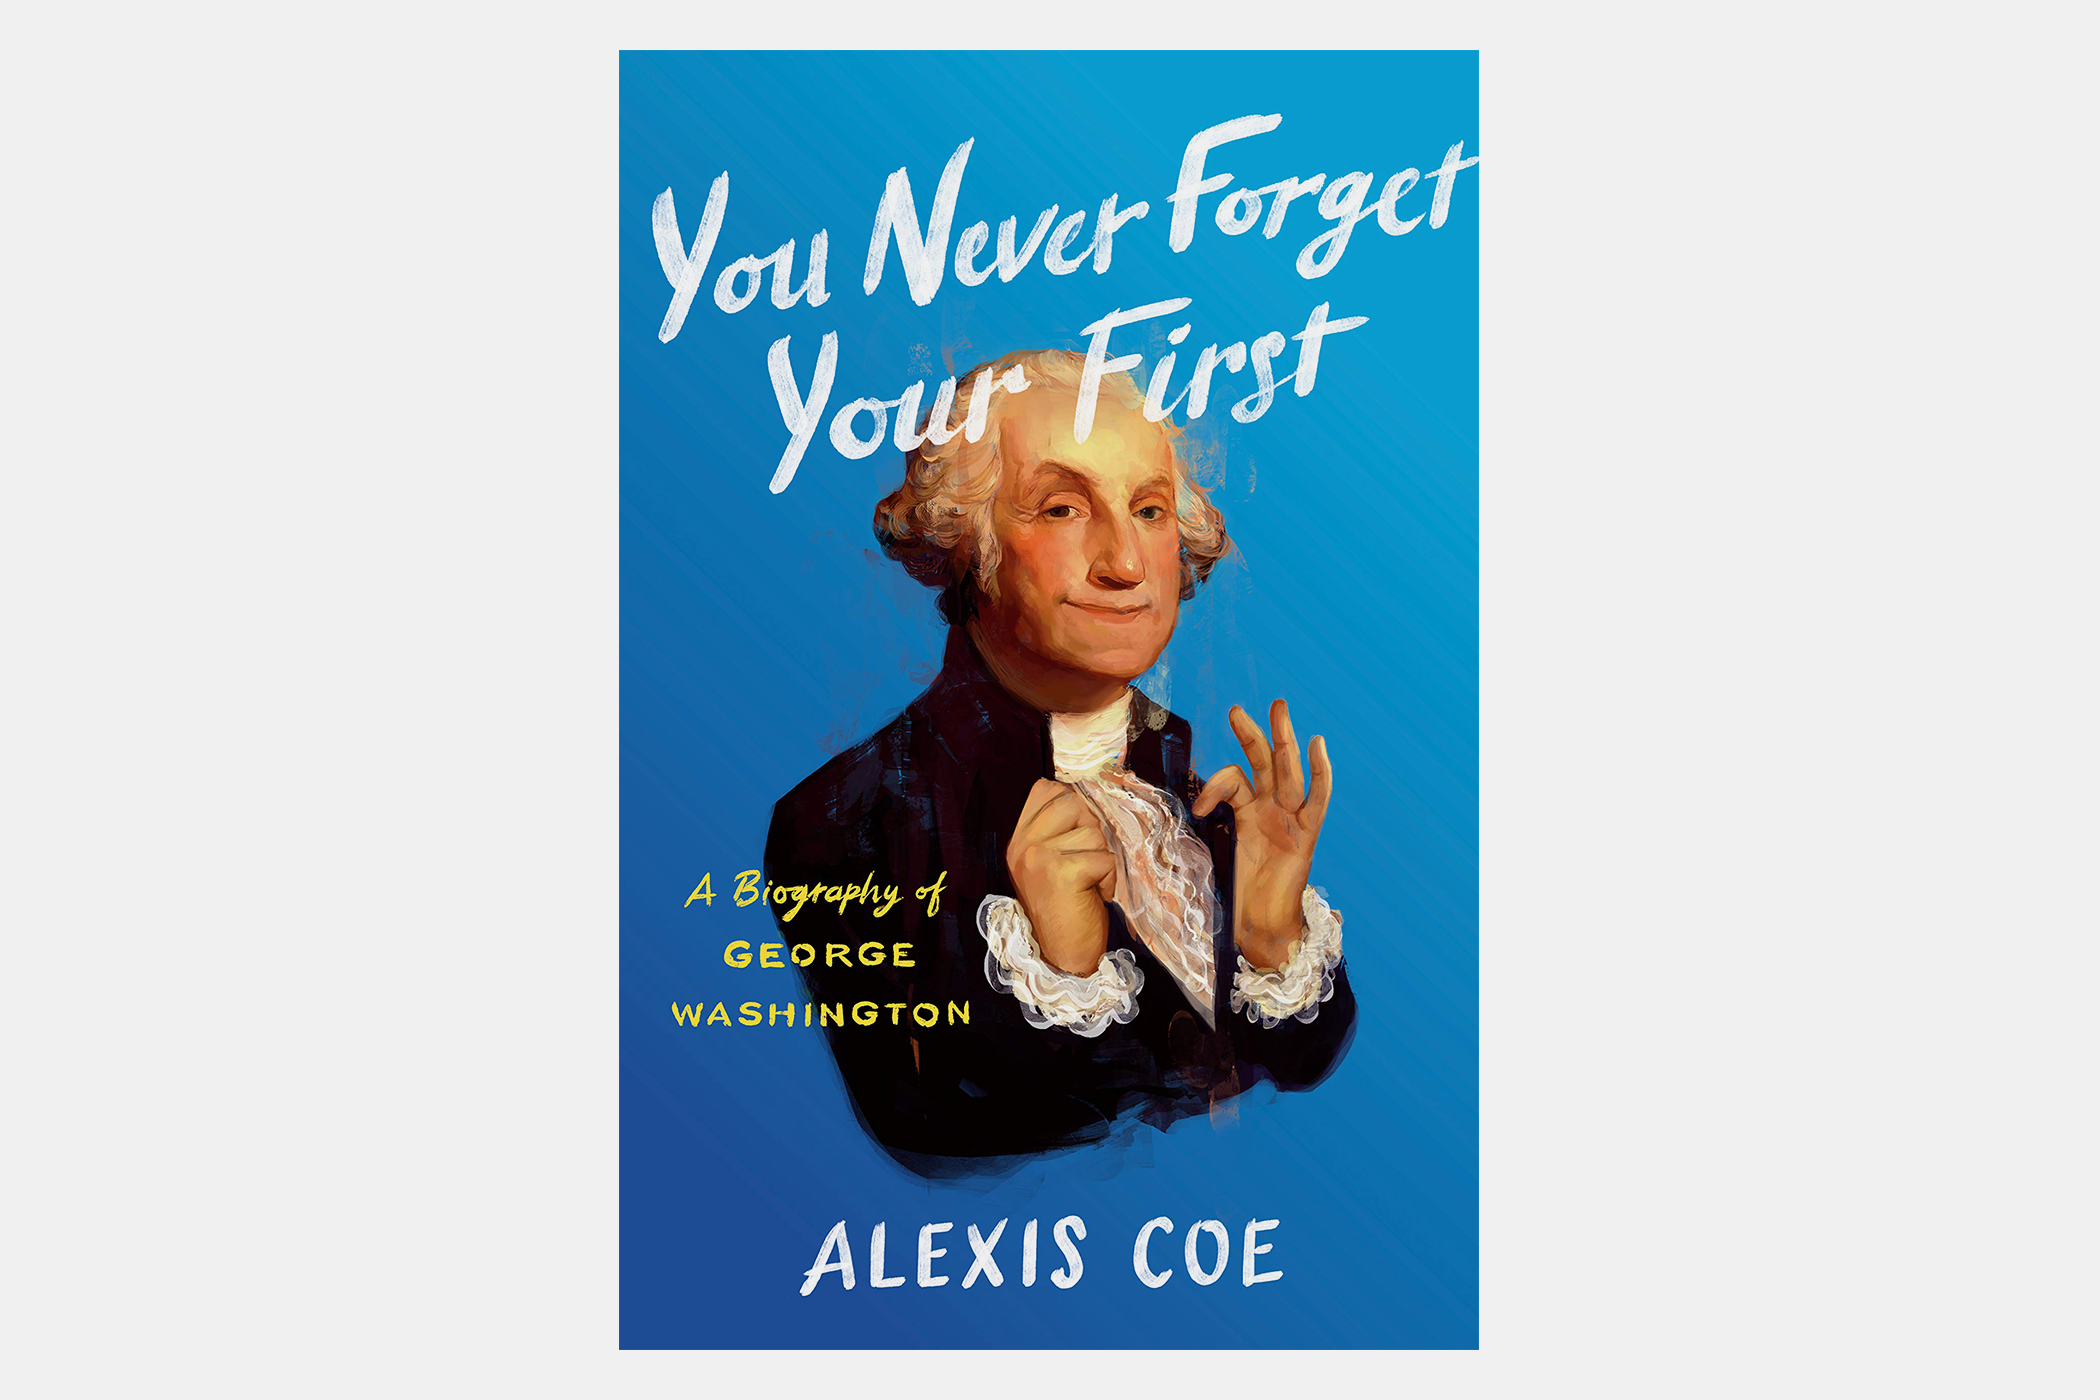 george washington alexis coe you never forget your first